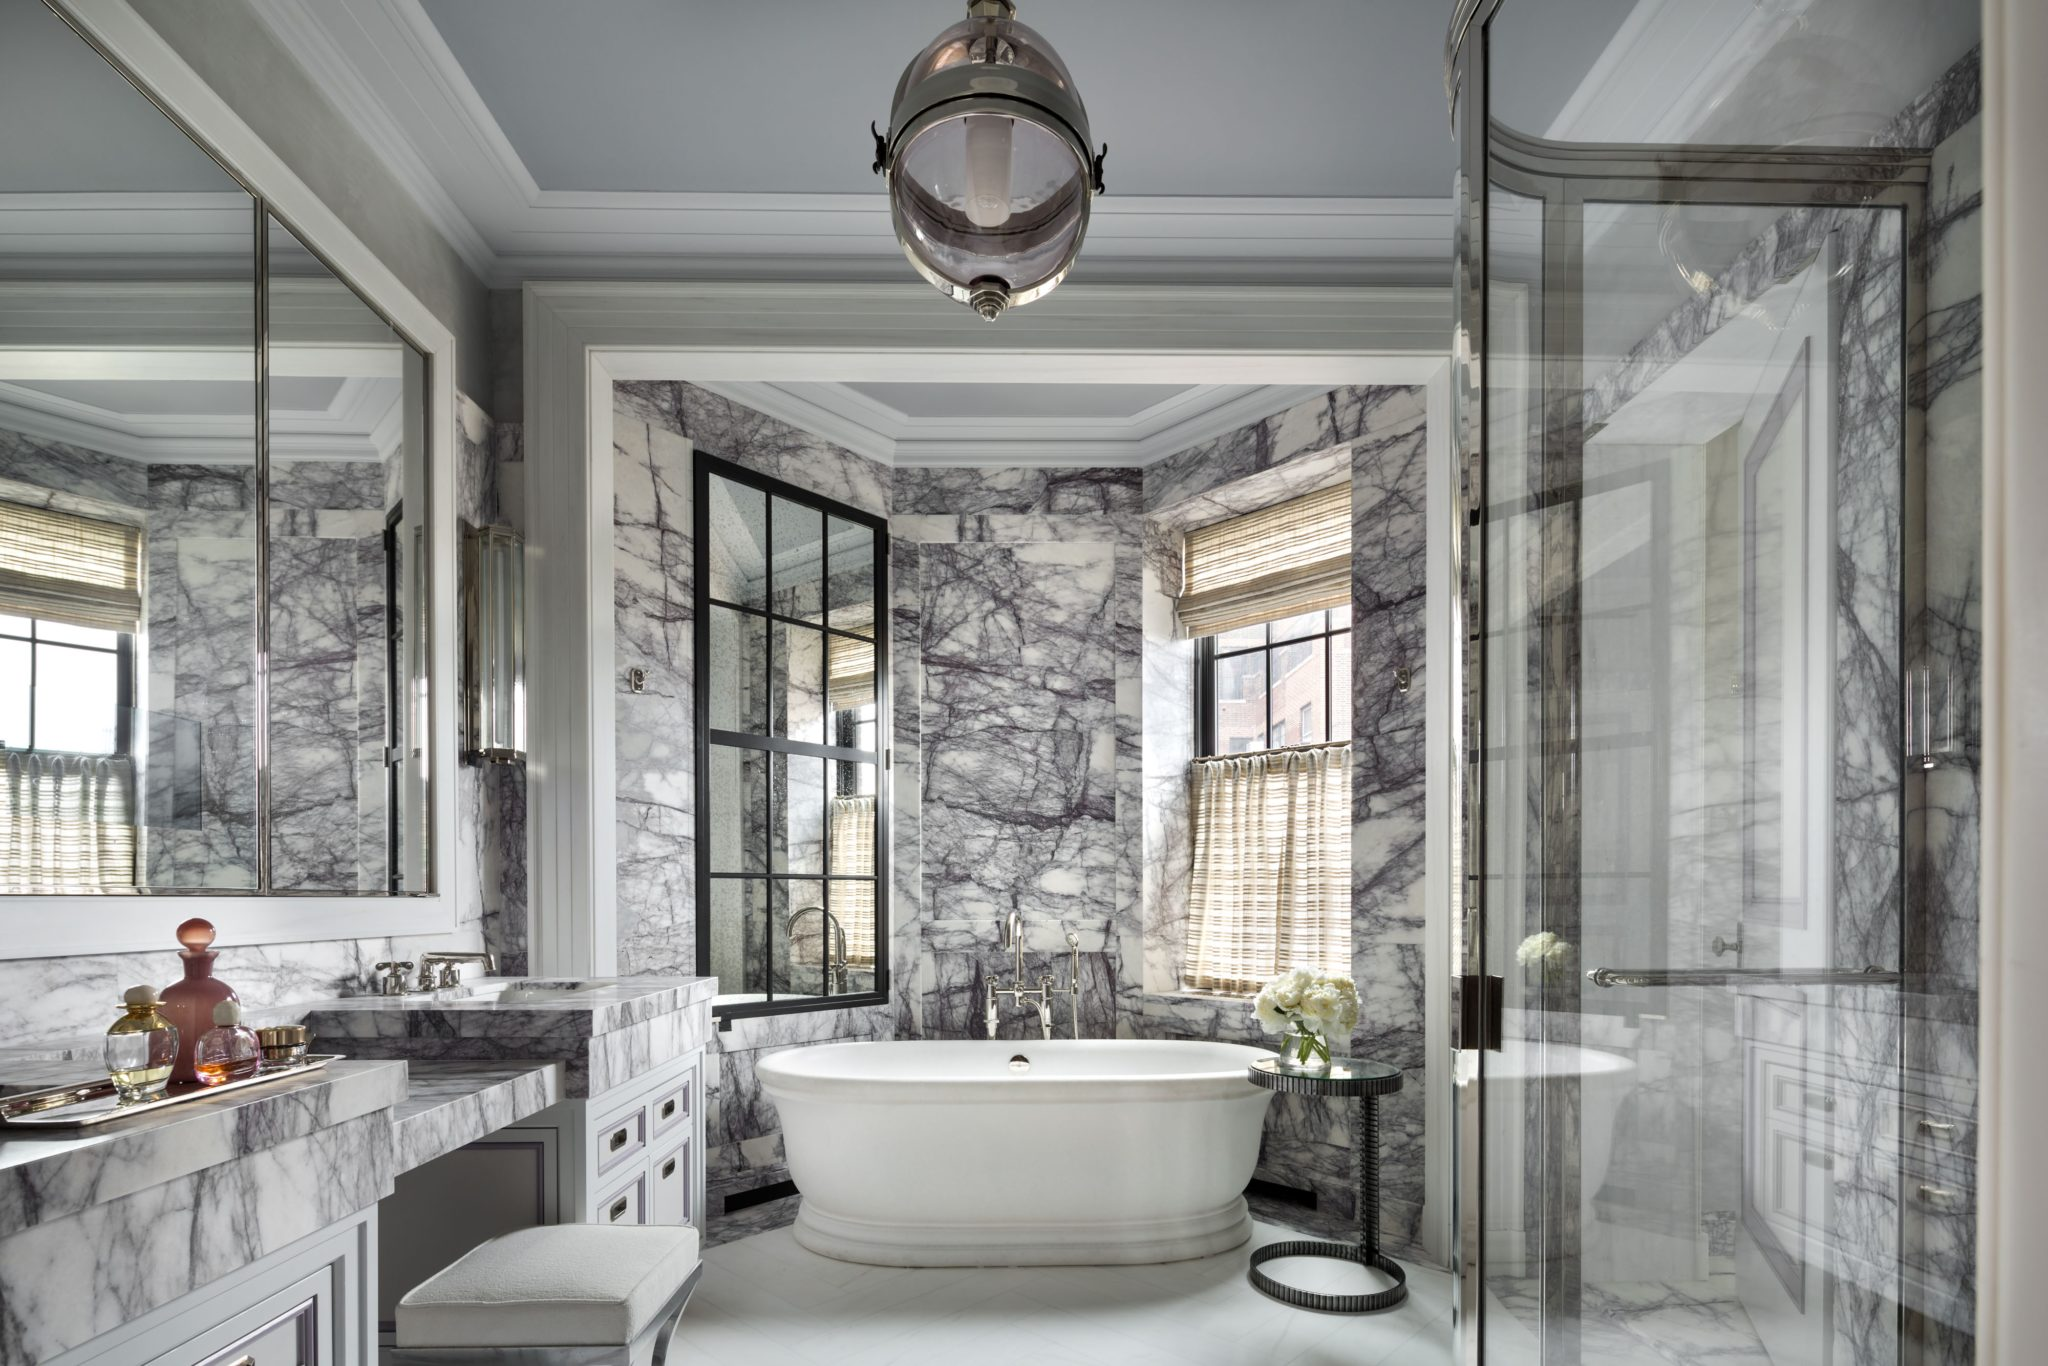 The master bath has stone floors and Lilac marble walls; a mirrored panel creates symmetry with an existing window. The tub is from Urban Archaeology with fittings by Waterworks; the pendant light is the Grayfoy by Steven Gambrel for Urban Electric Co.